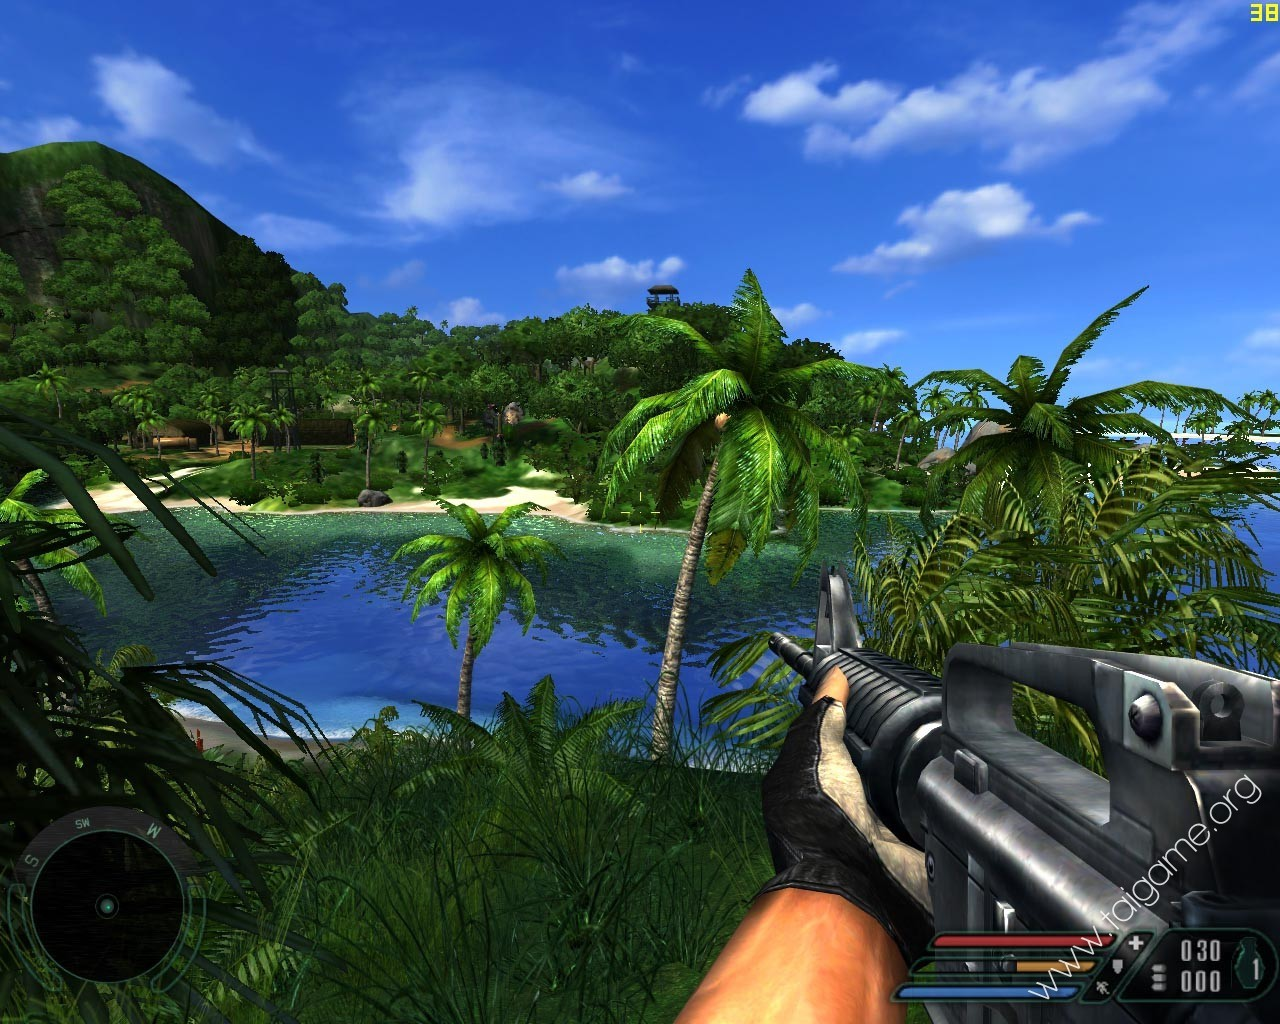 how to quit the far cry game